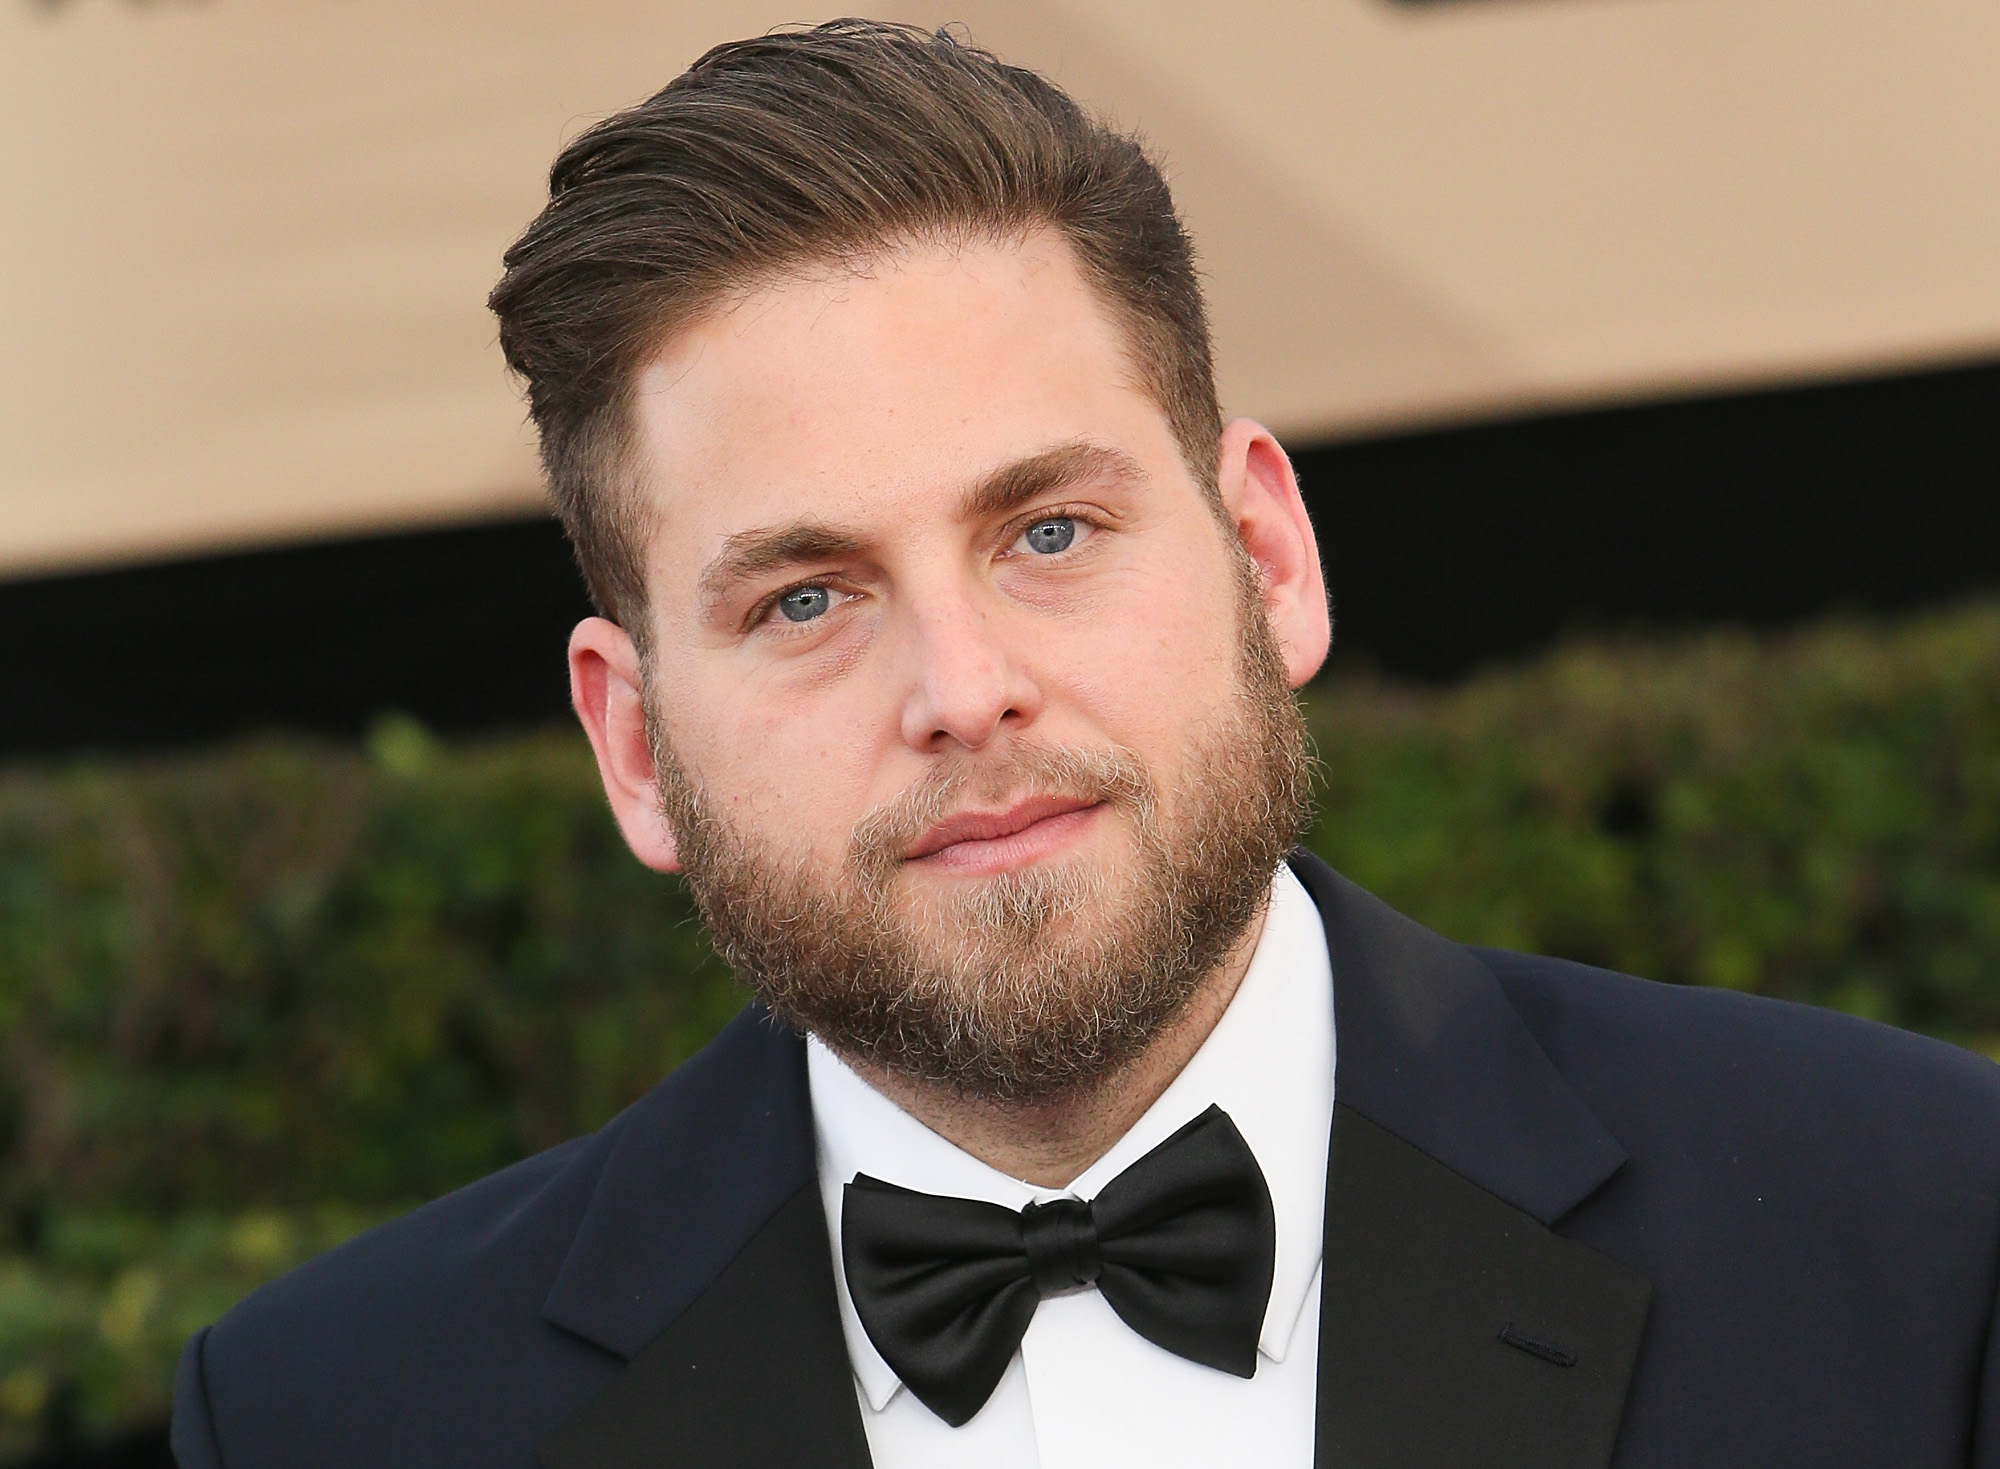 Jonah Hill Has Long Blonde Hair And A Beard In His New